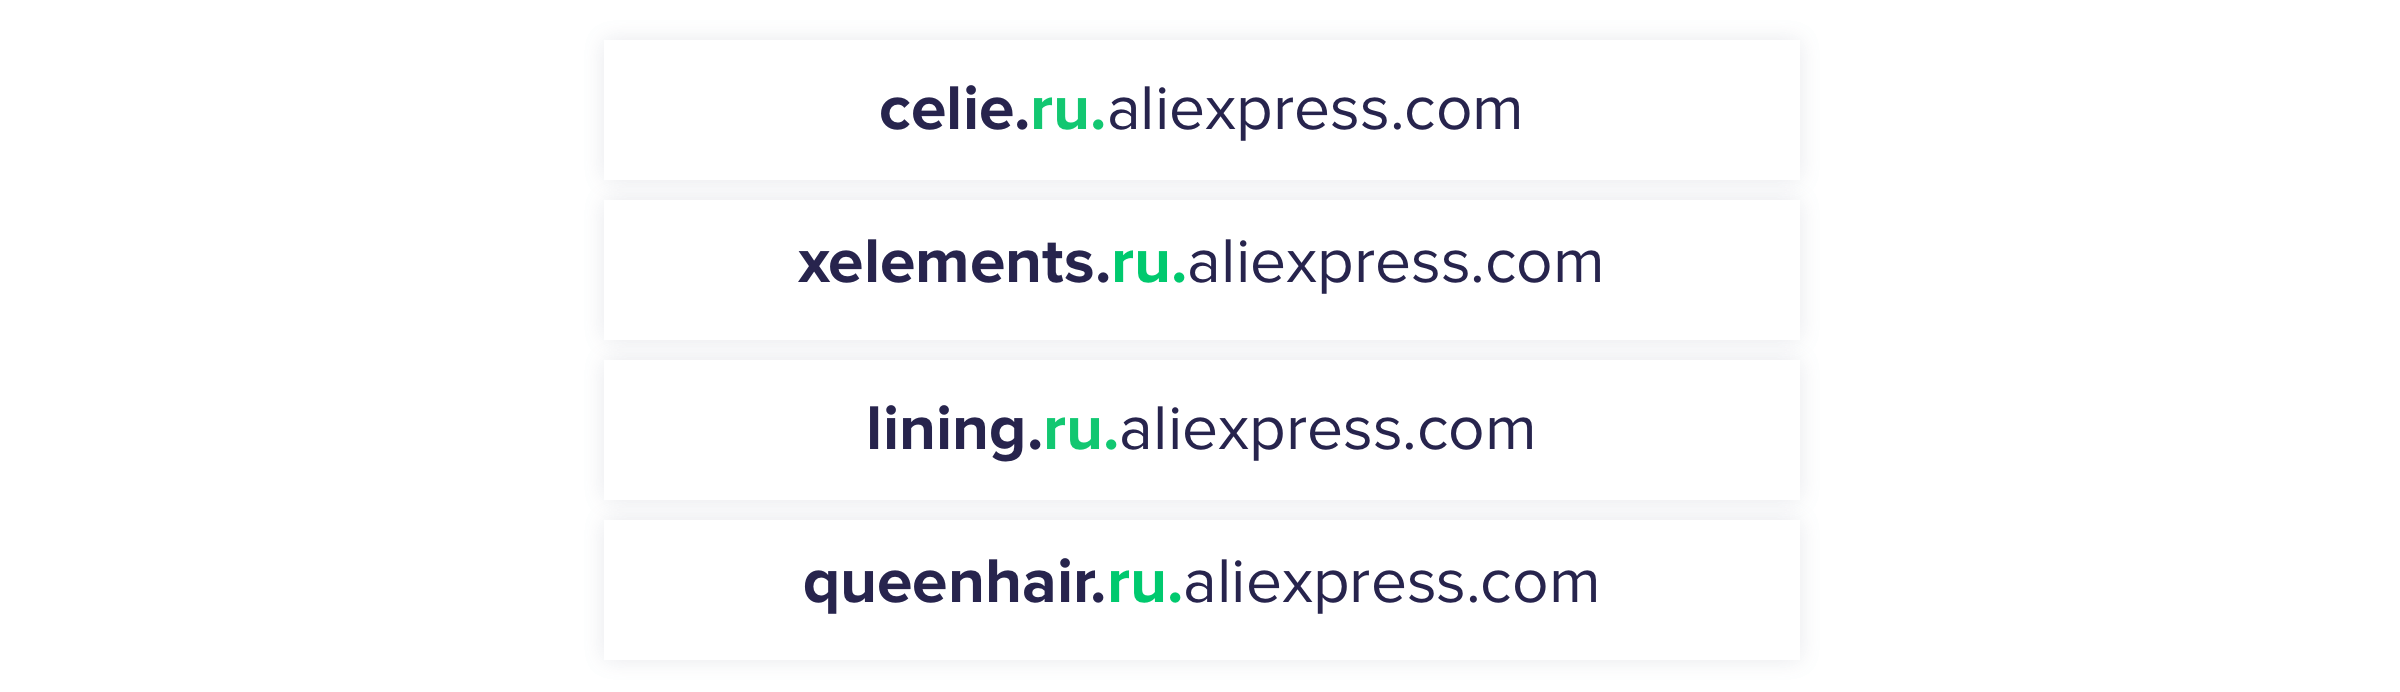 AliExpress regional and category subdomains